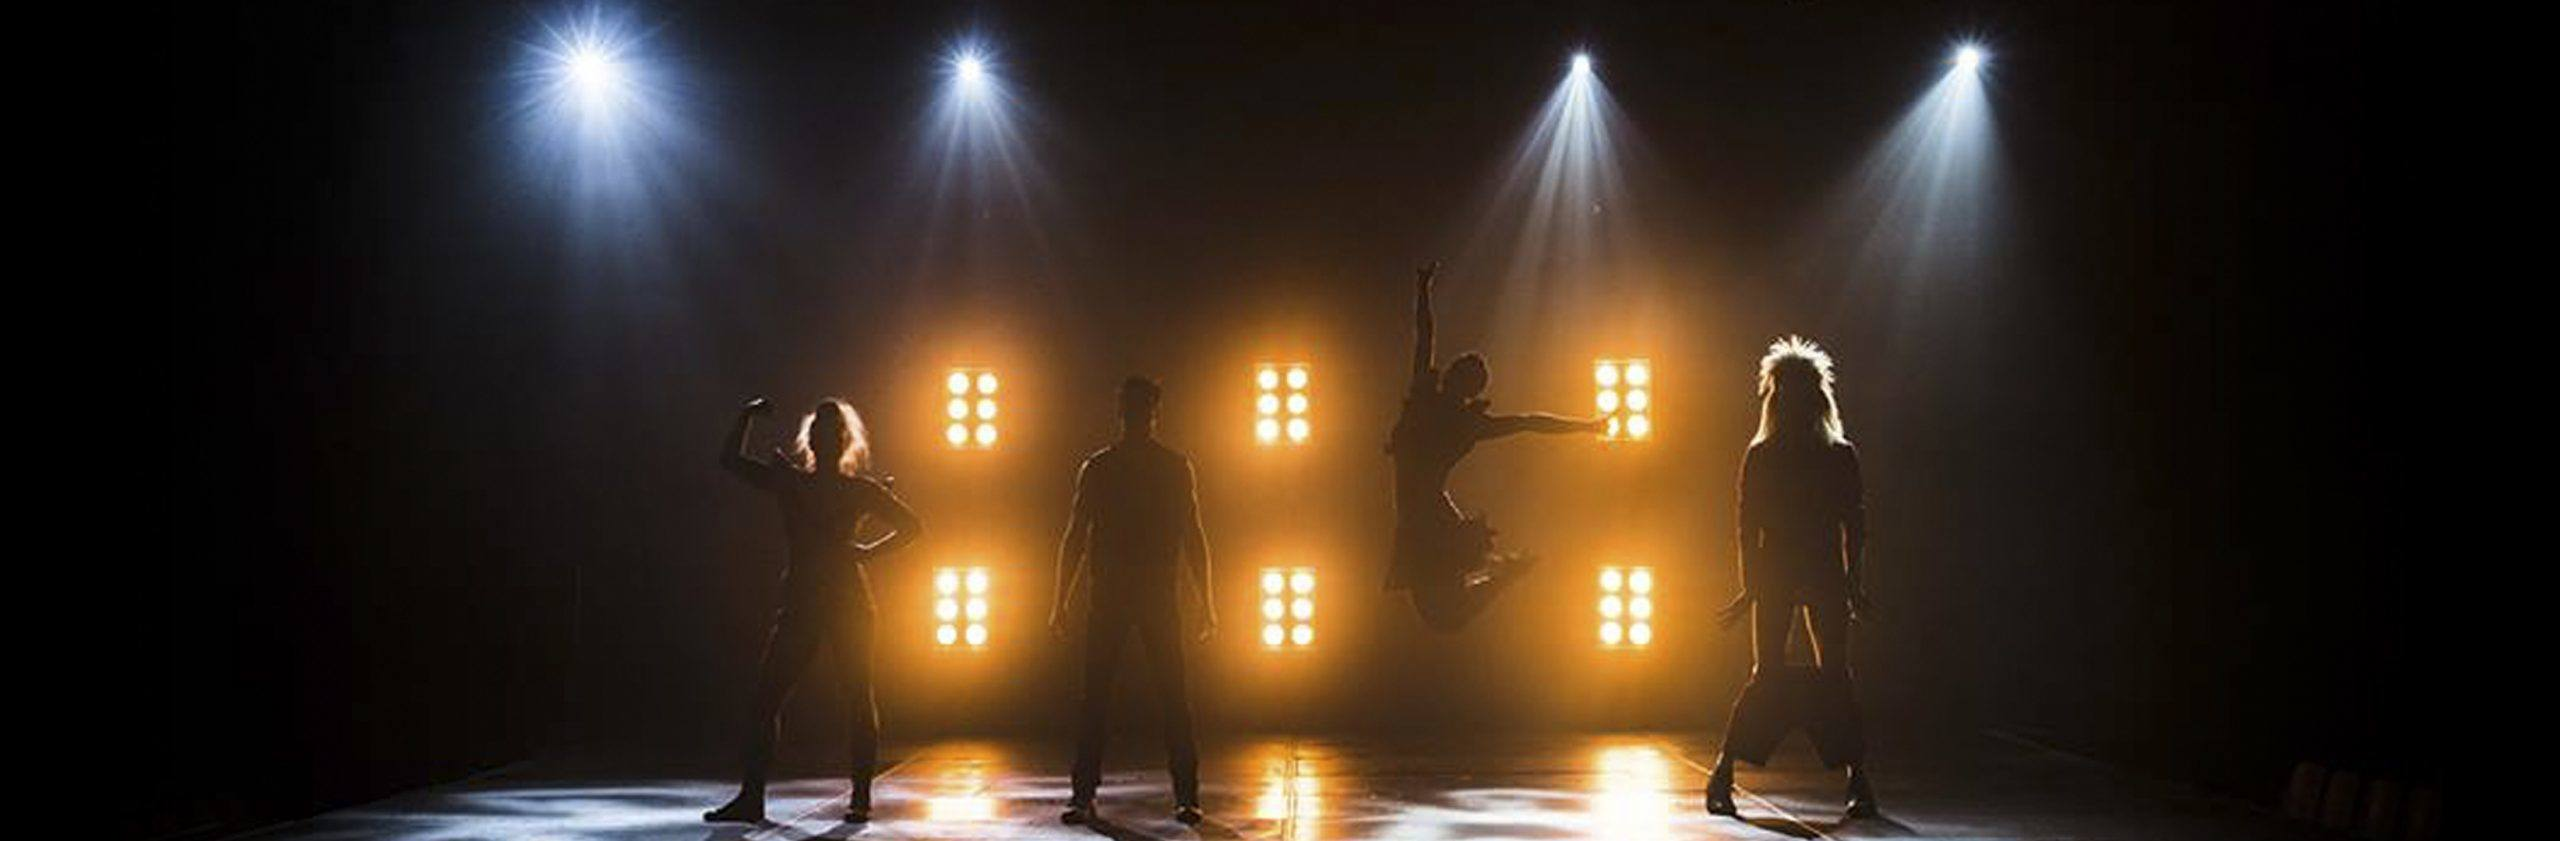 circus artists backlit with a dramatic lighting design